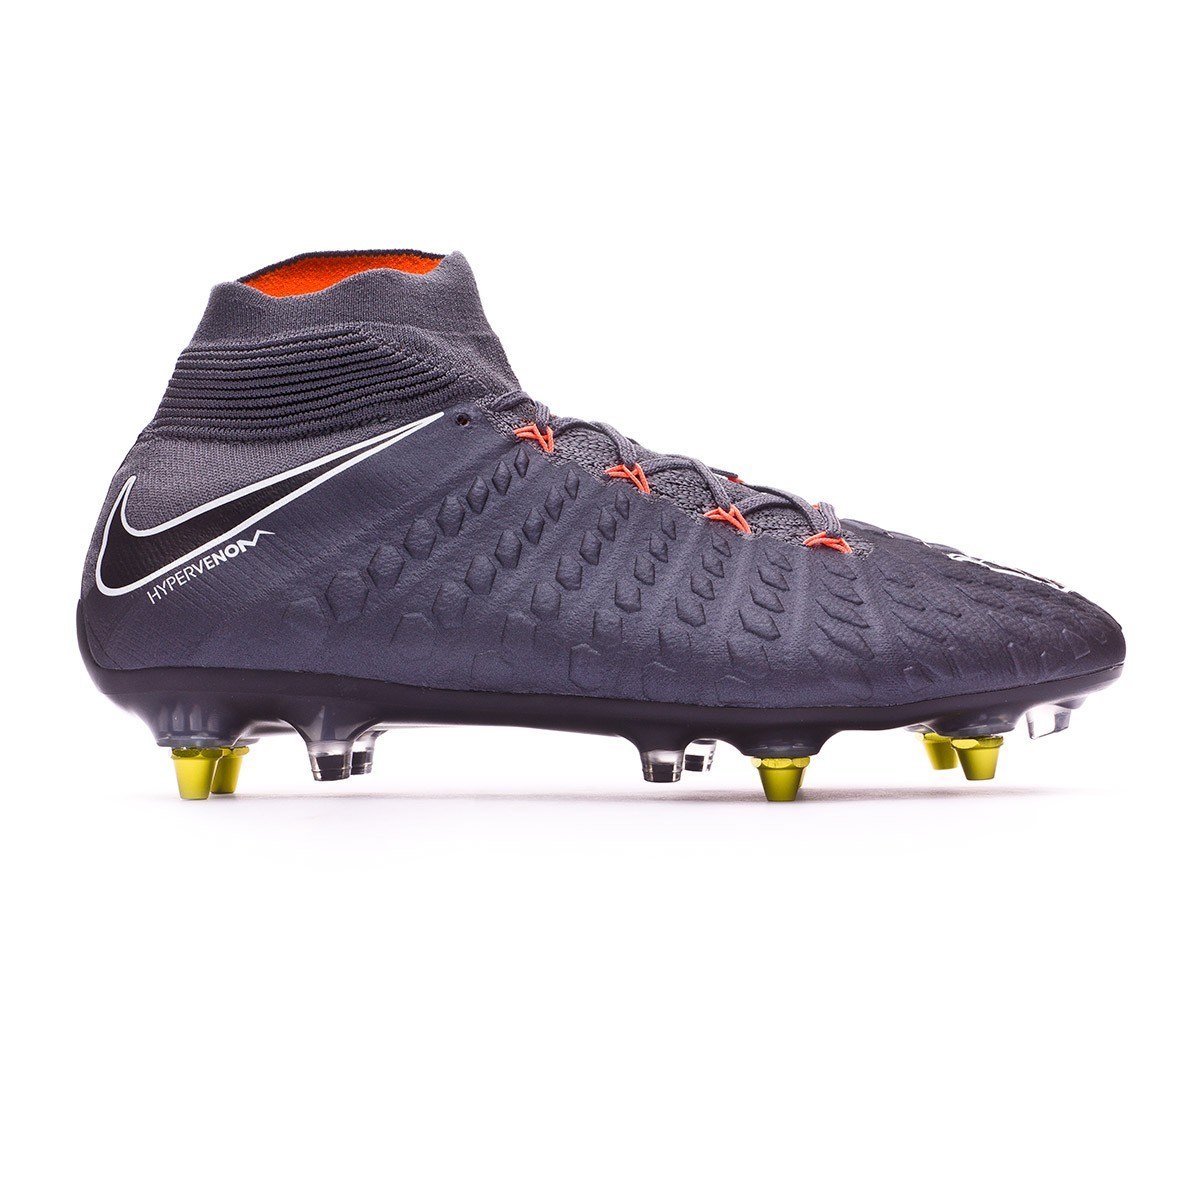 efba02fabfce Football Boots Nike Hypervenom Phantom III Elite DF SG-Pro Anti-Clog Dark  grey-Total orange-White - Football store Fútbol Emotion